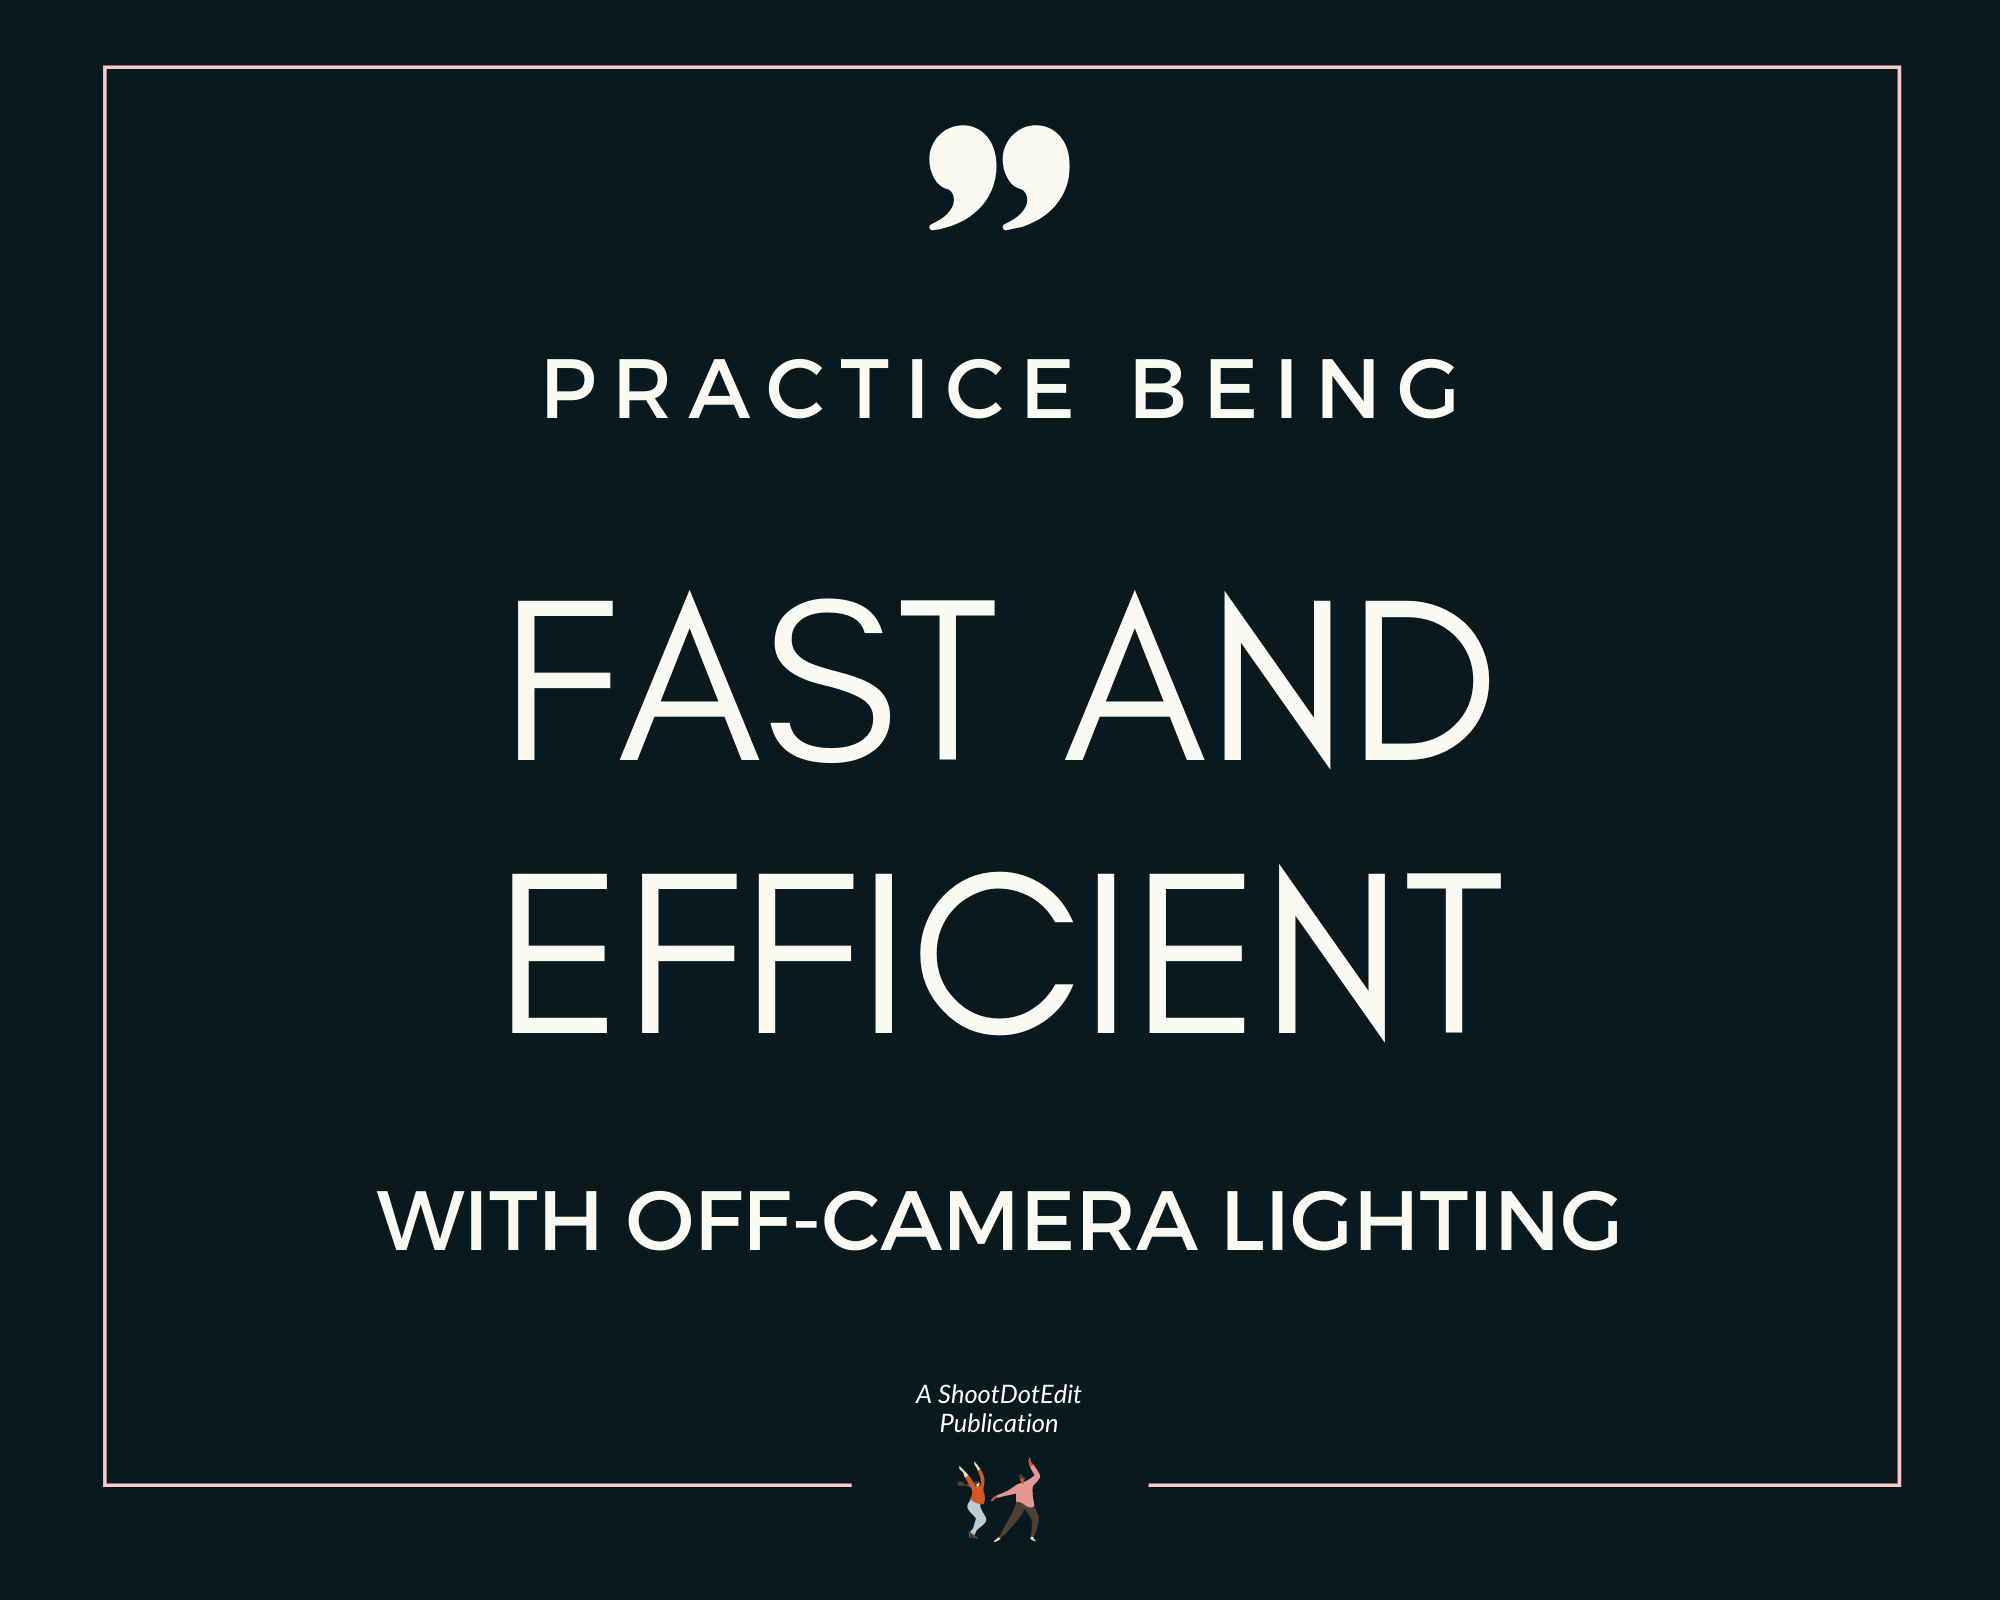 Infographic stating practice being fast and efficient with off camera lighting